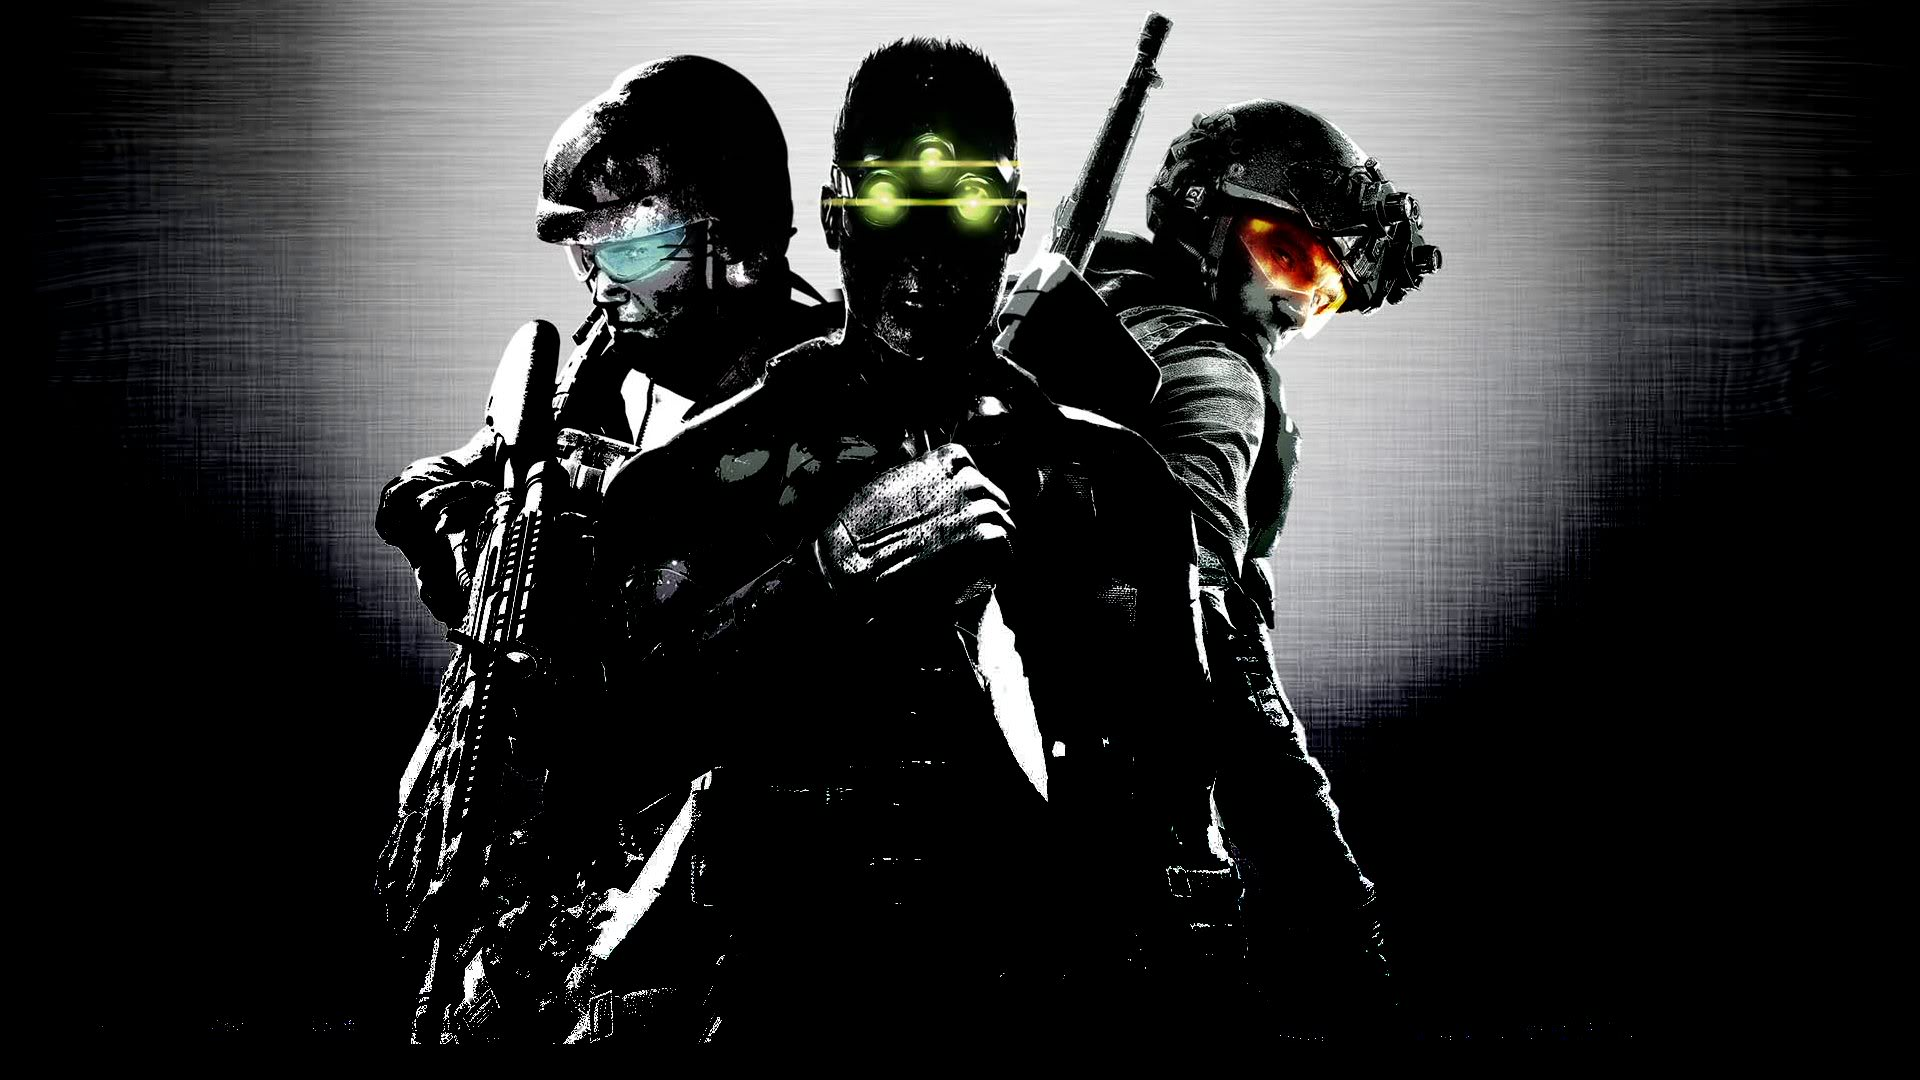 tomclancy games hd HDjpg 1920x1080